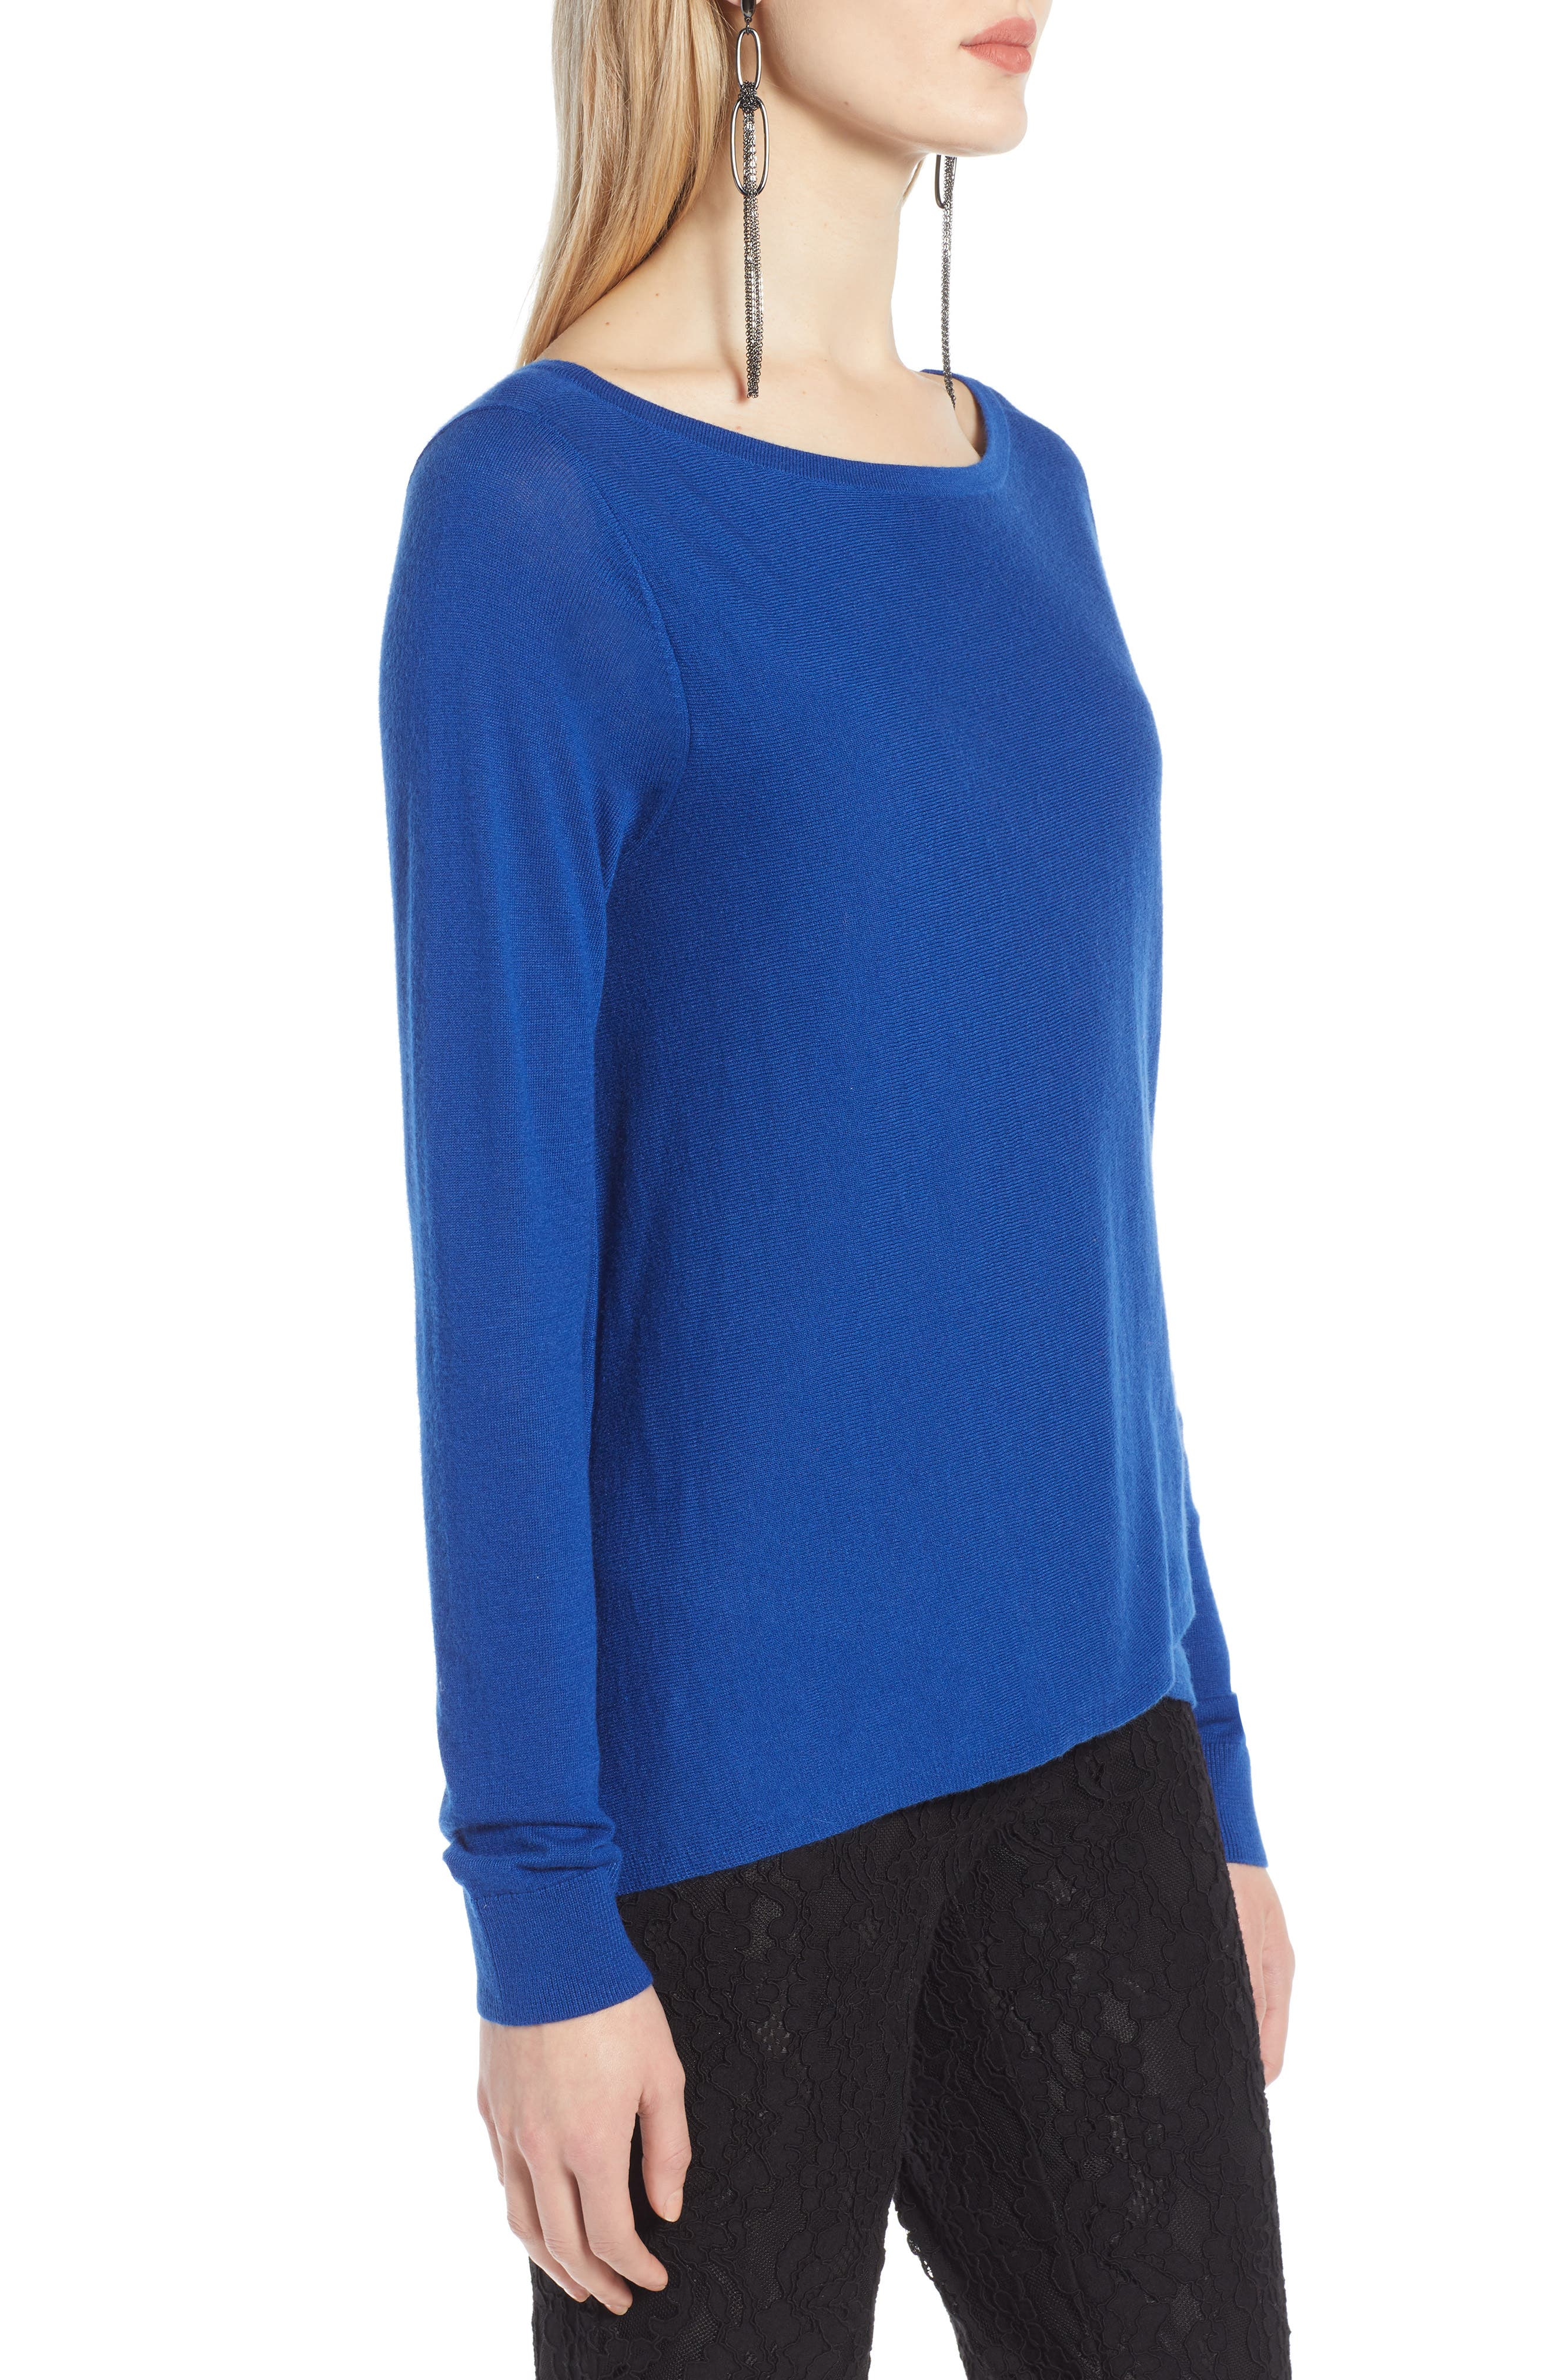 HALOGEN<SUP>®</SUP>, Crossover Front Knit Sweater, Alternate thumbnail 3, color, BLUE MAZARINE